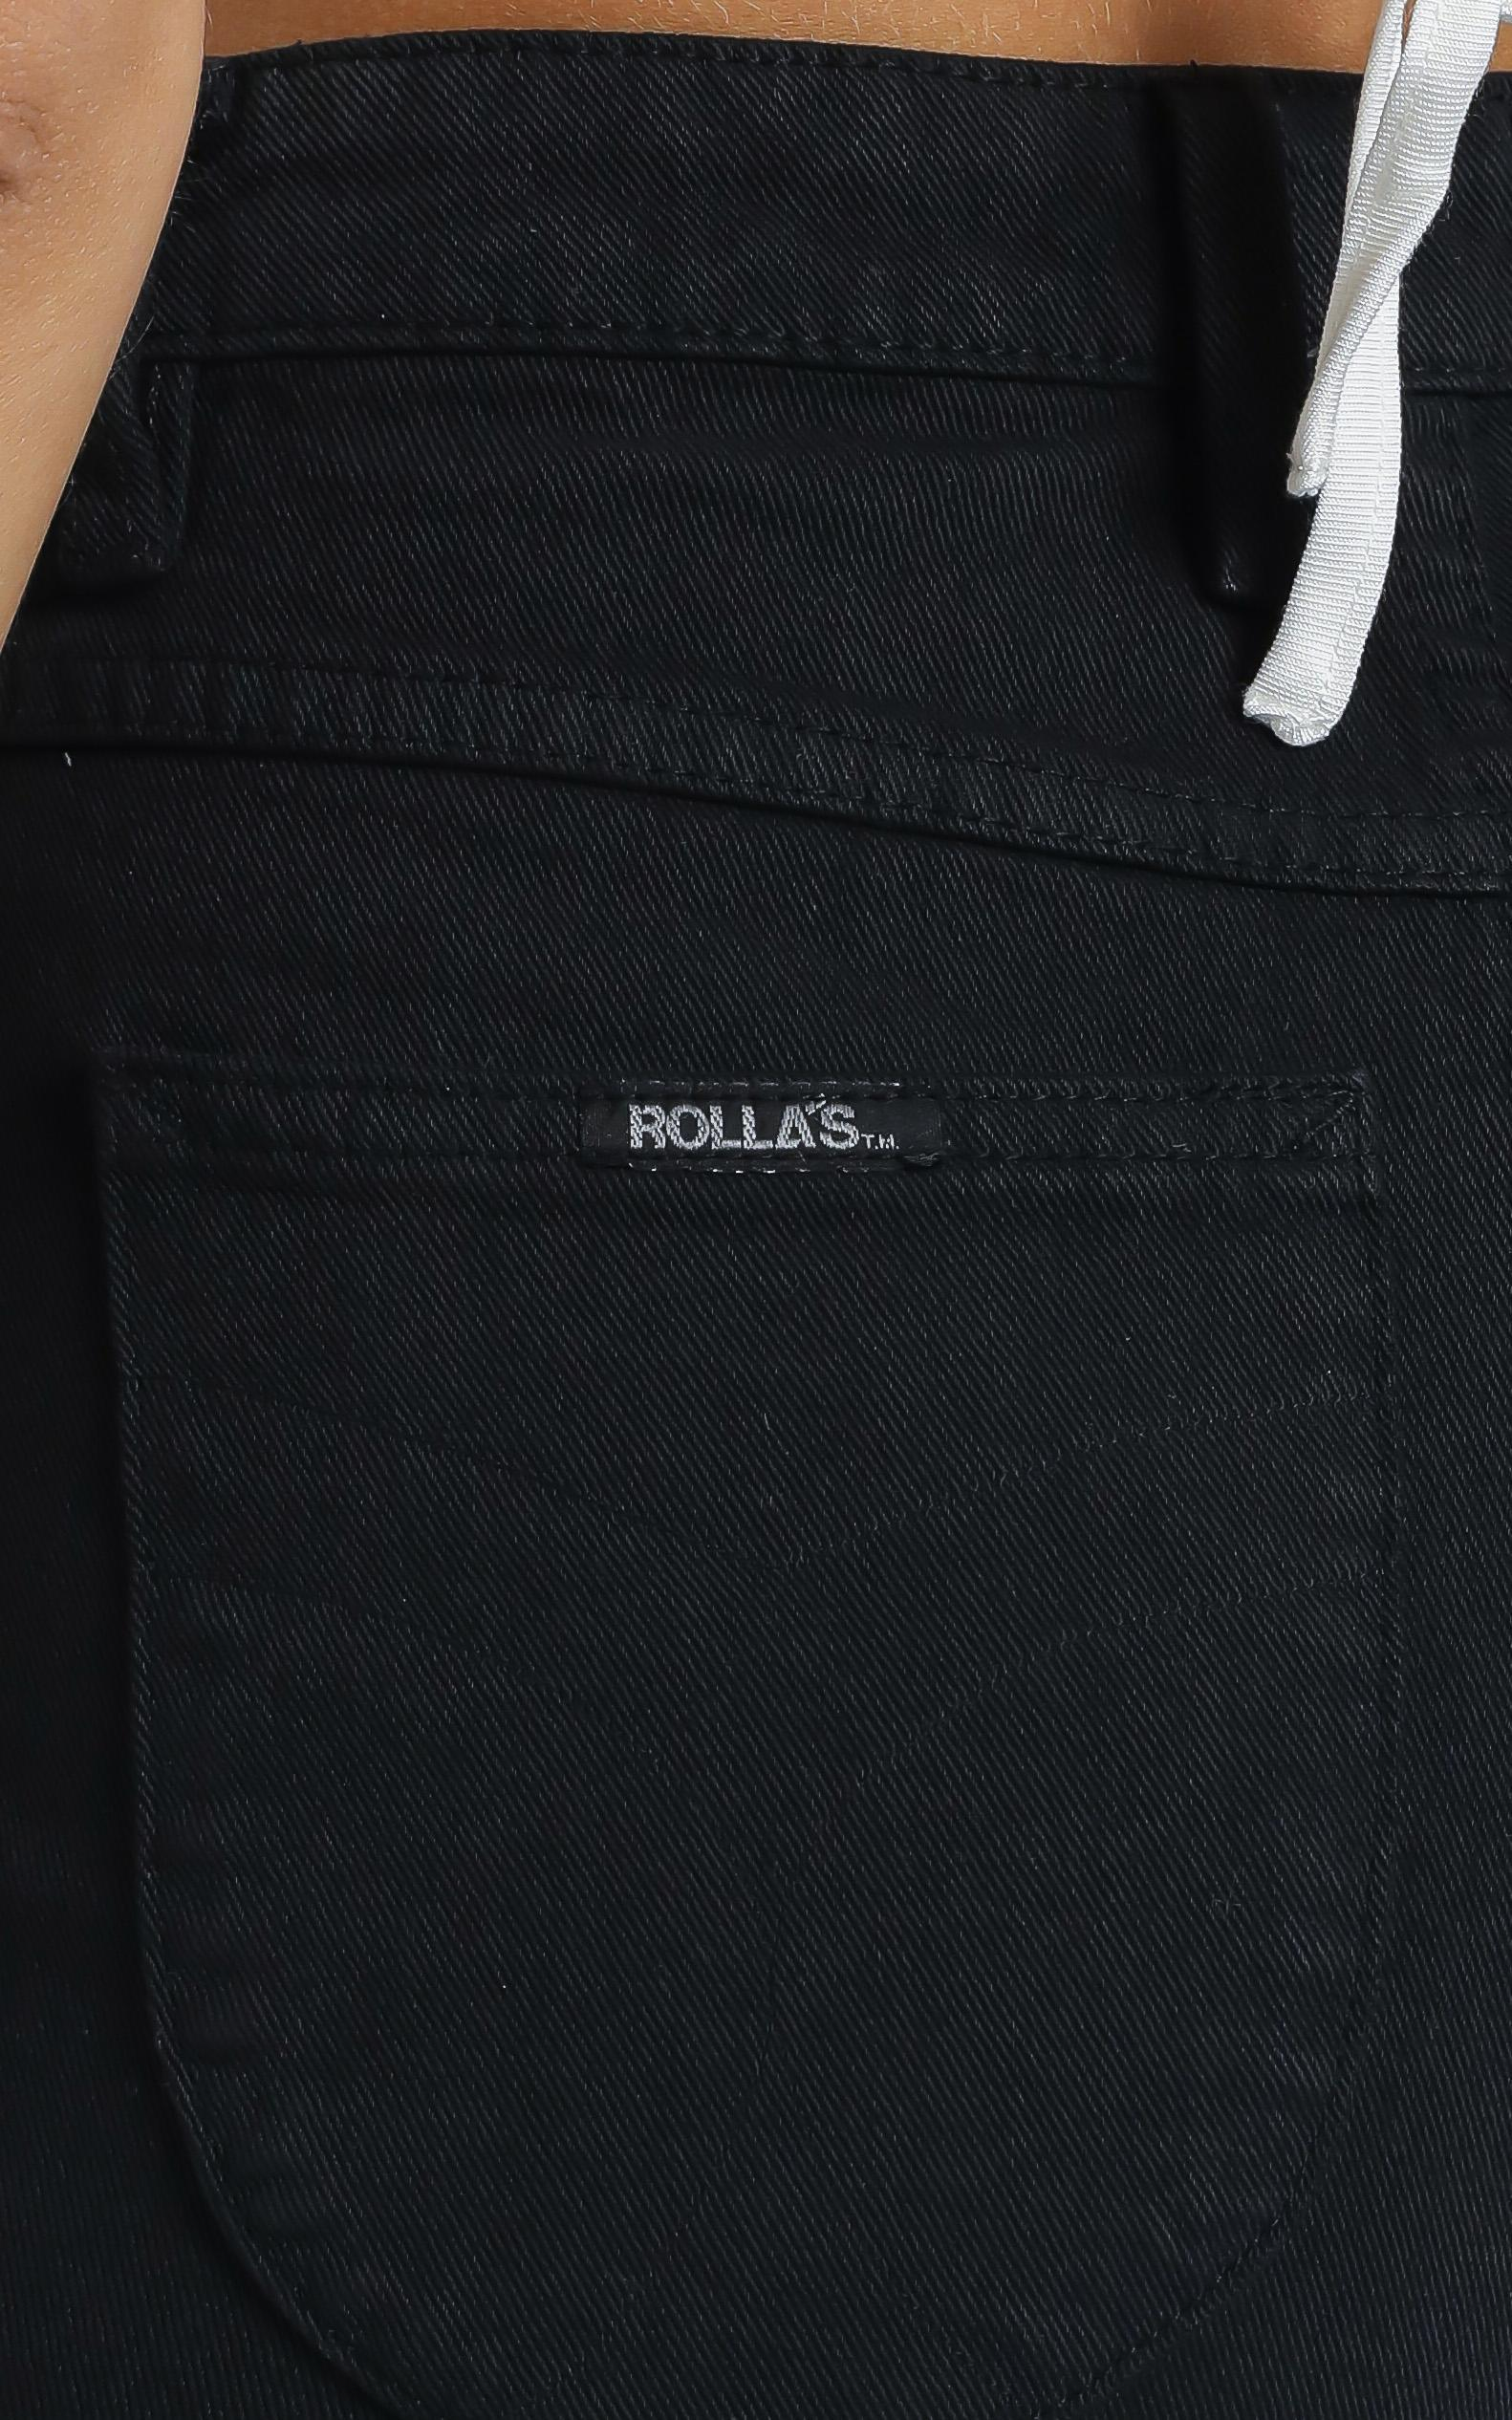 Rollas - Dusters Denim Shorts in Black Dust - 12 (L), BLK1, hi-res image number null